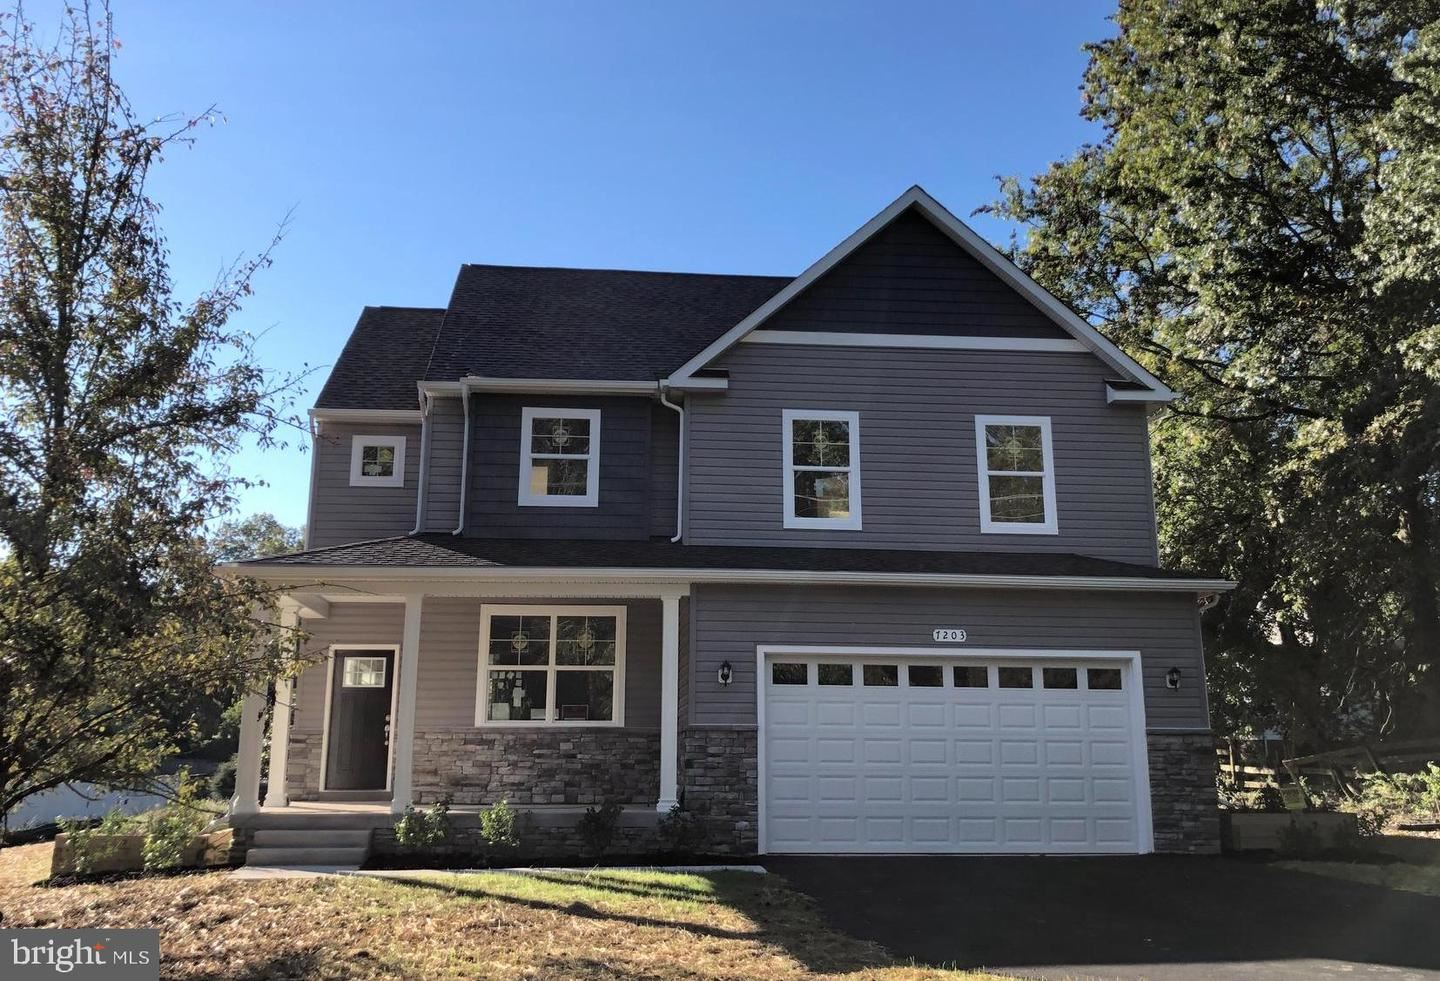 7203 FOREST AVE, Hanover, MD 21076 - MLS#: MDAA463742